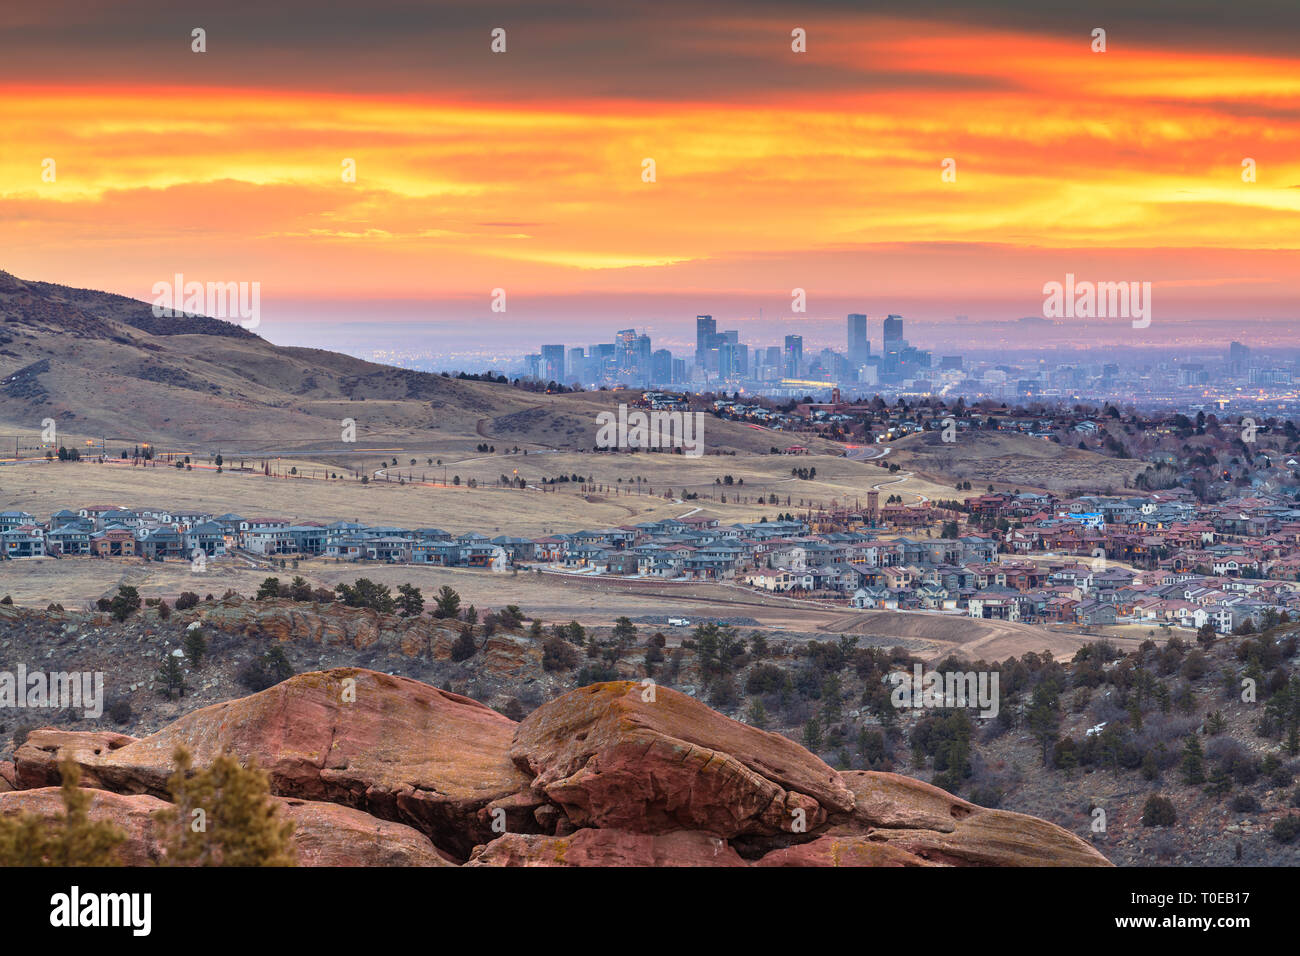 Denver, Colorado, USA downtown skyline viewed from Red Rocks at dawn. - Stock Image